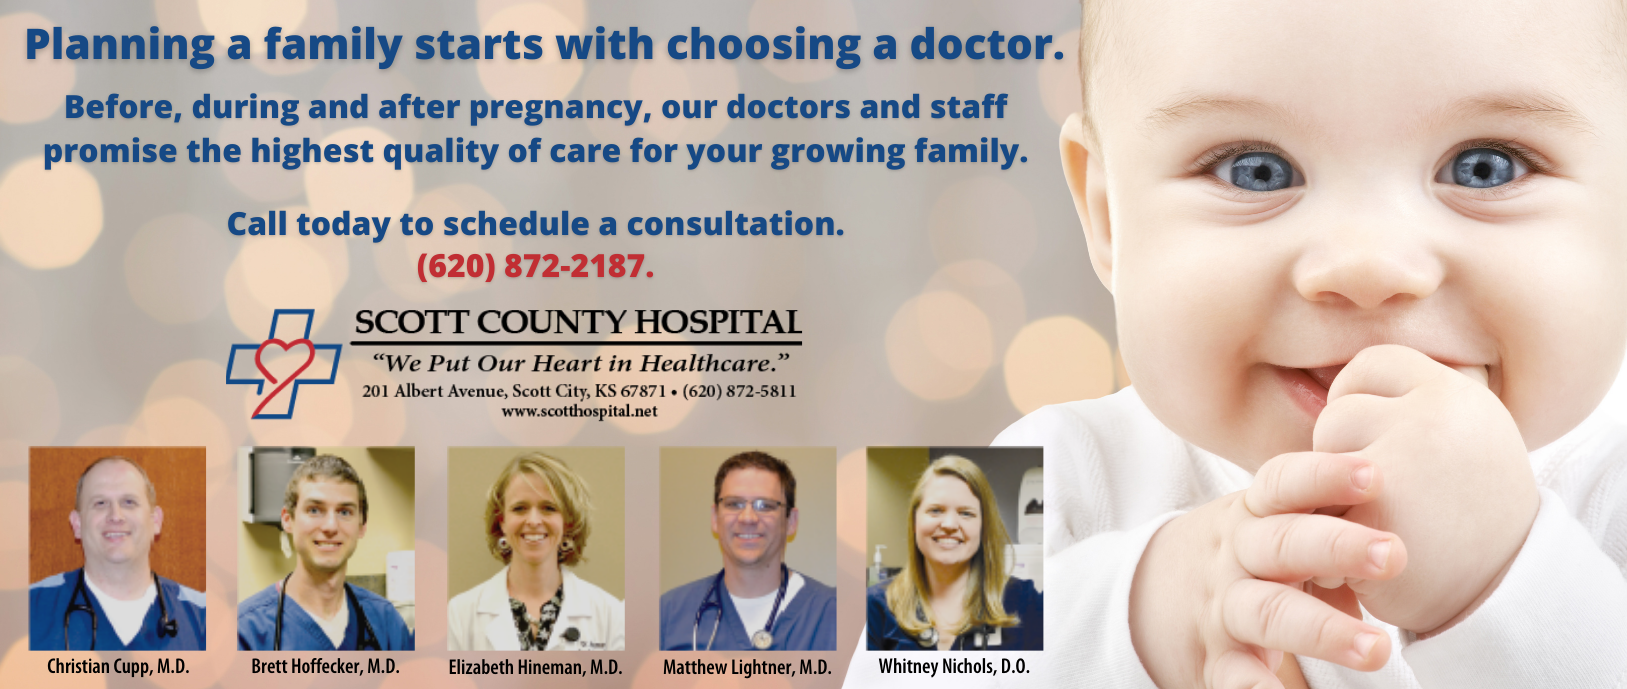 Planning a Family starts with choosing a doctor. Before, during and after pregnancy, our doctors and staff promise the highest quality of care for your growing family. Call today to schedule a consultation/.